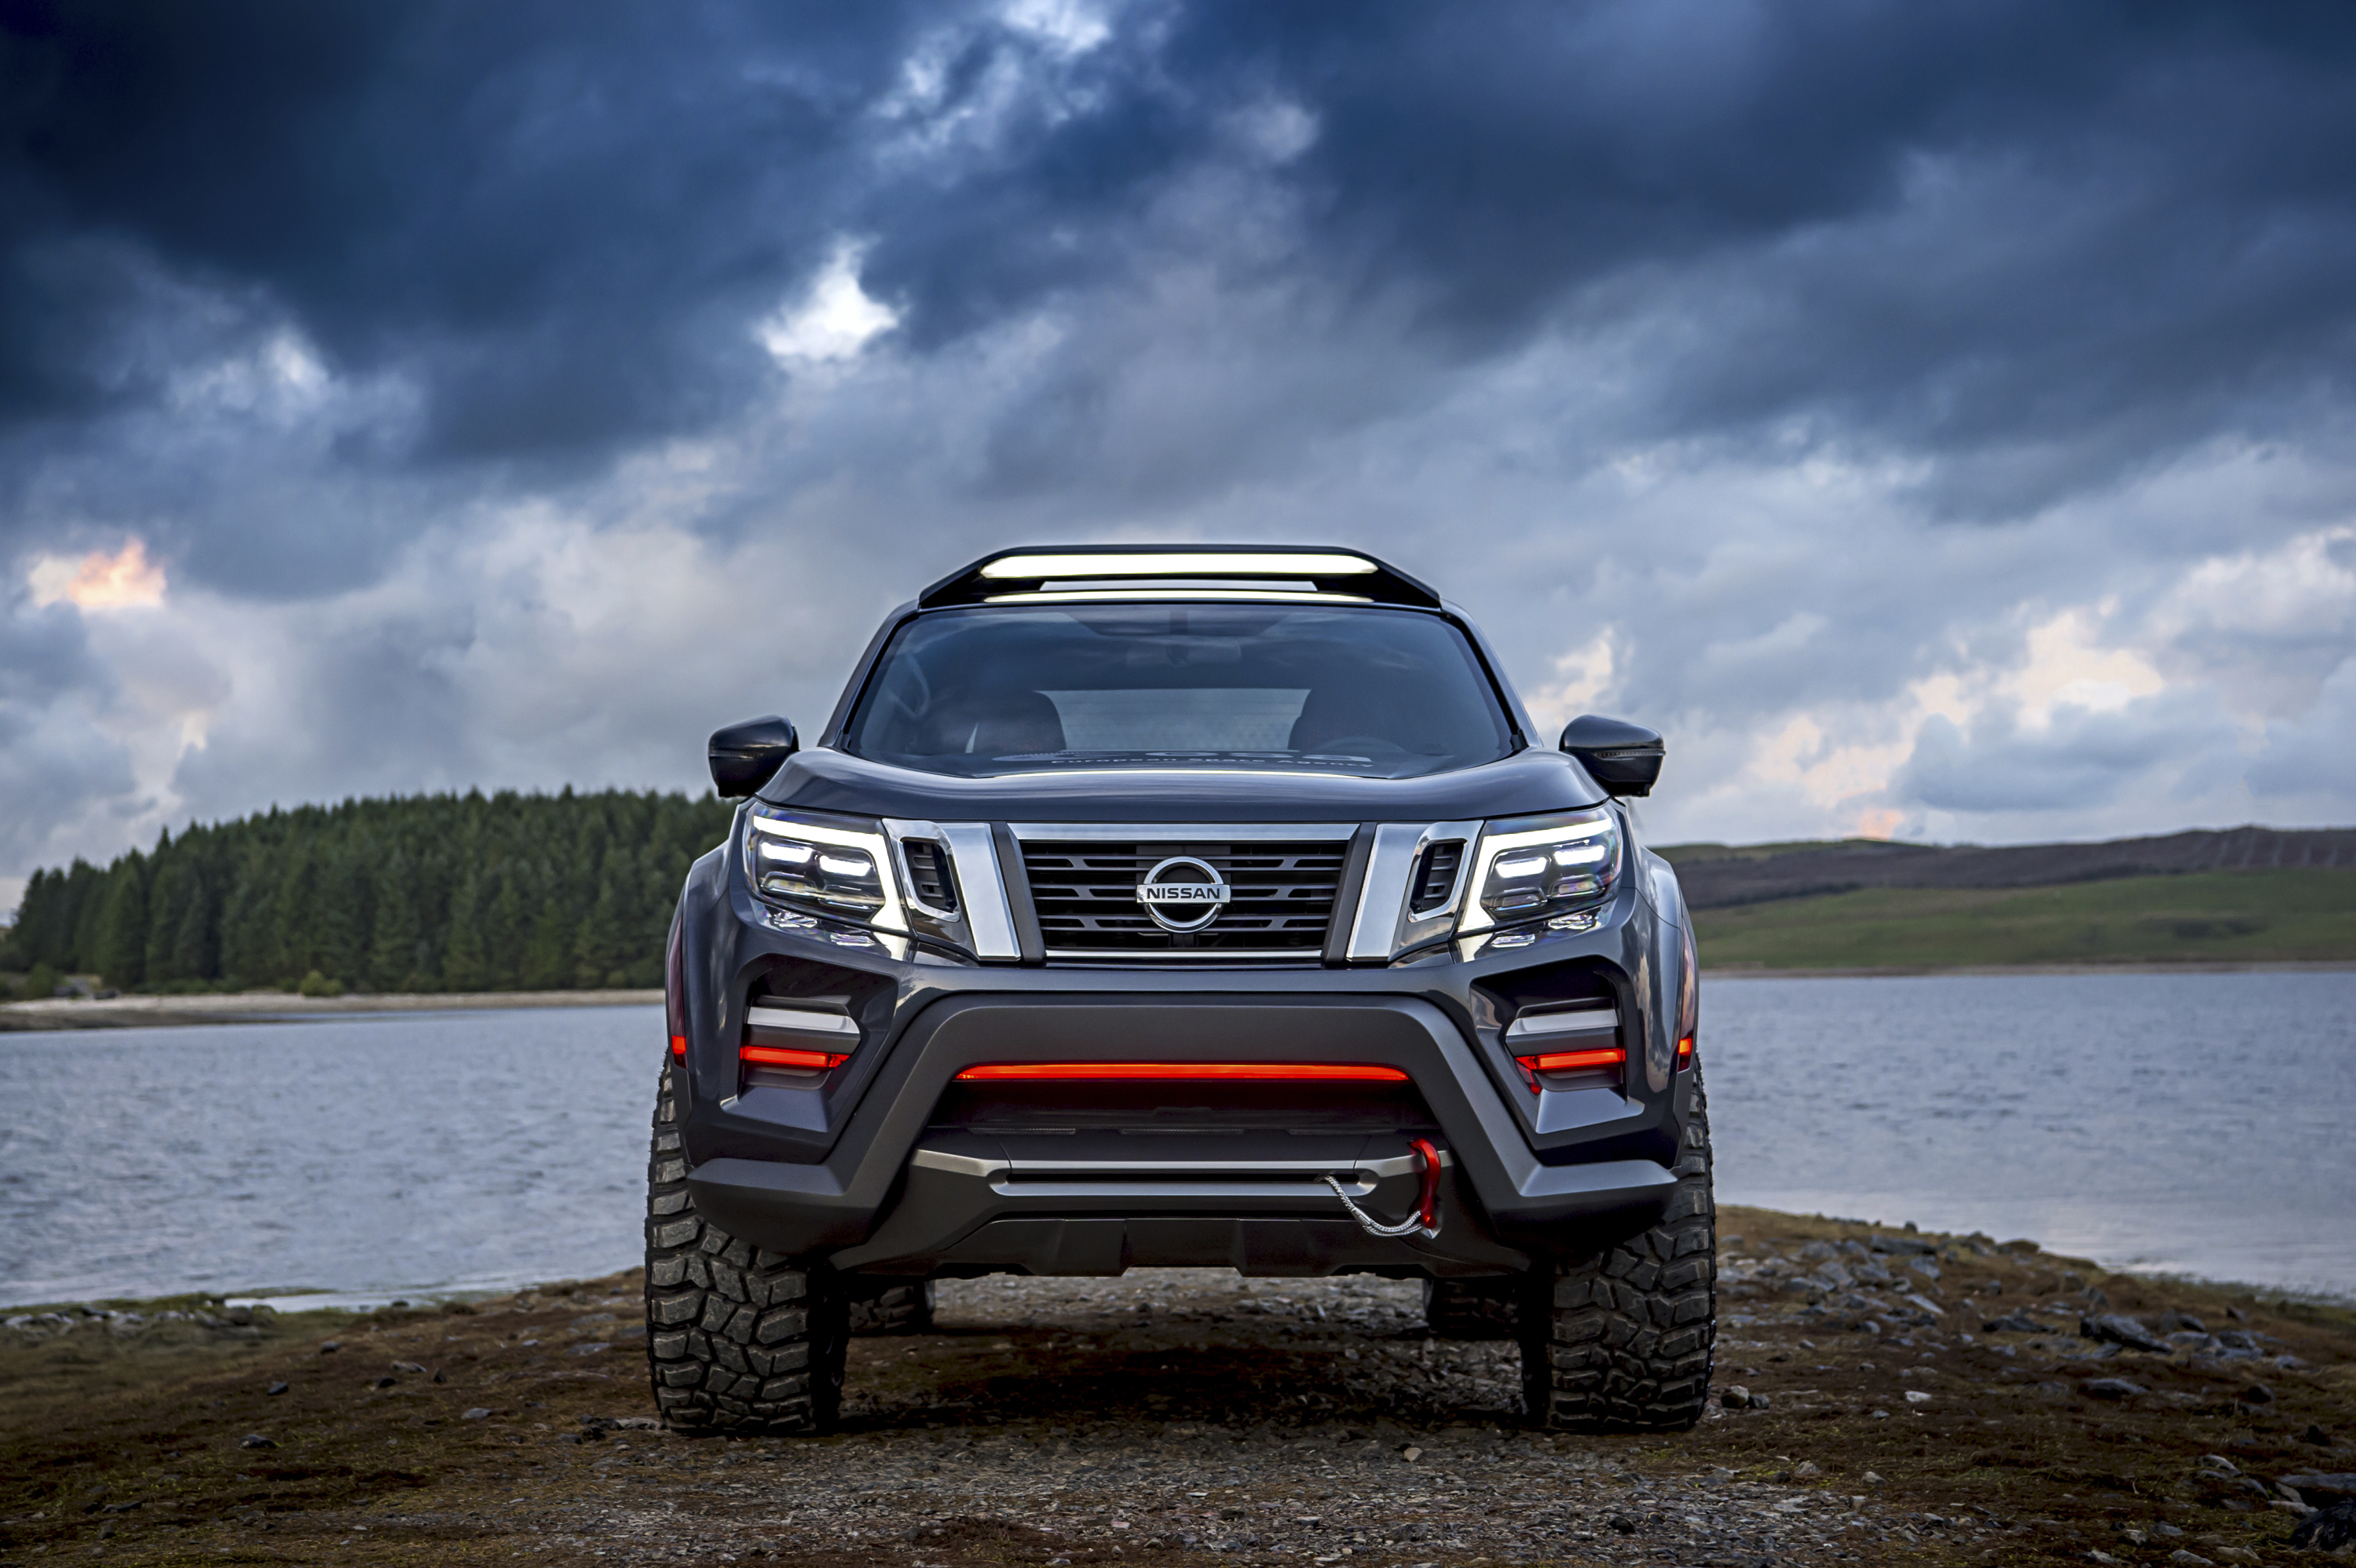 2018 nissan navara dark sky concept | top speed